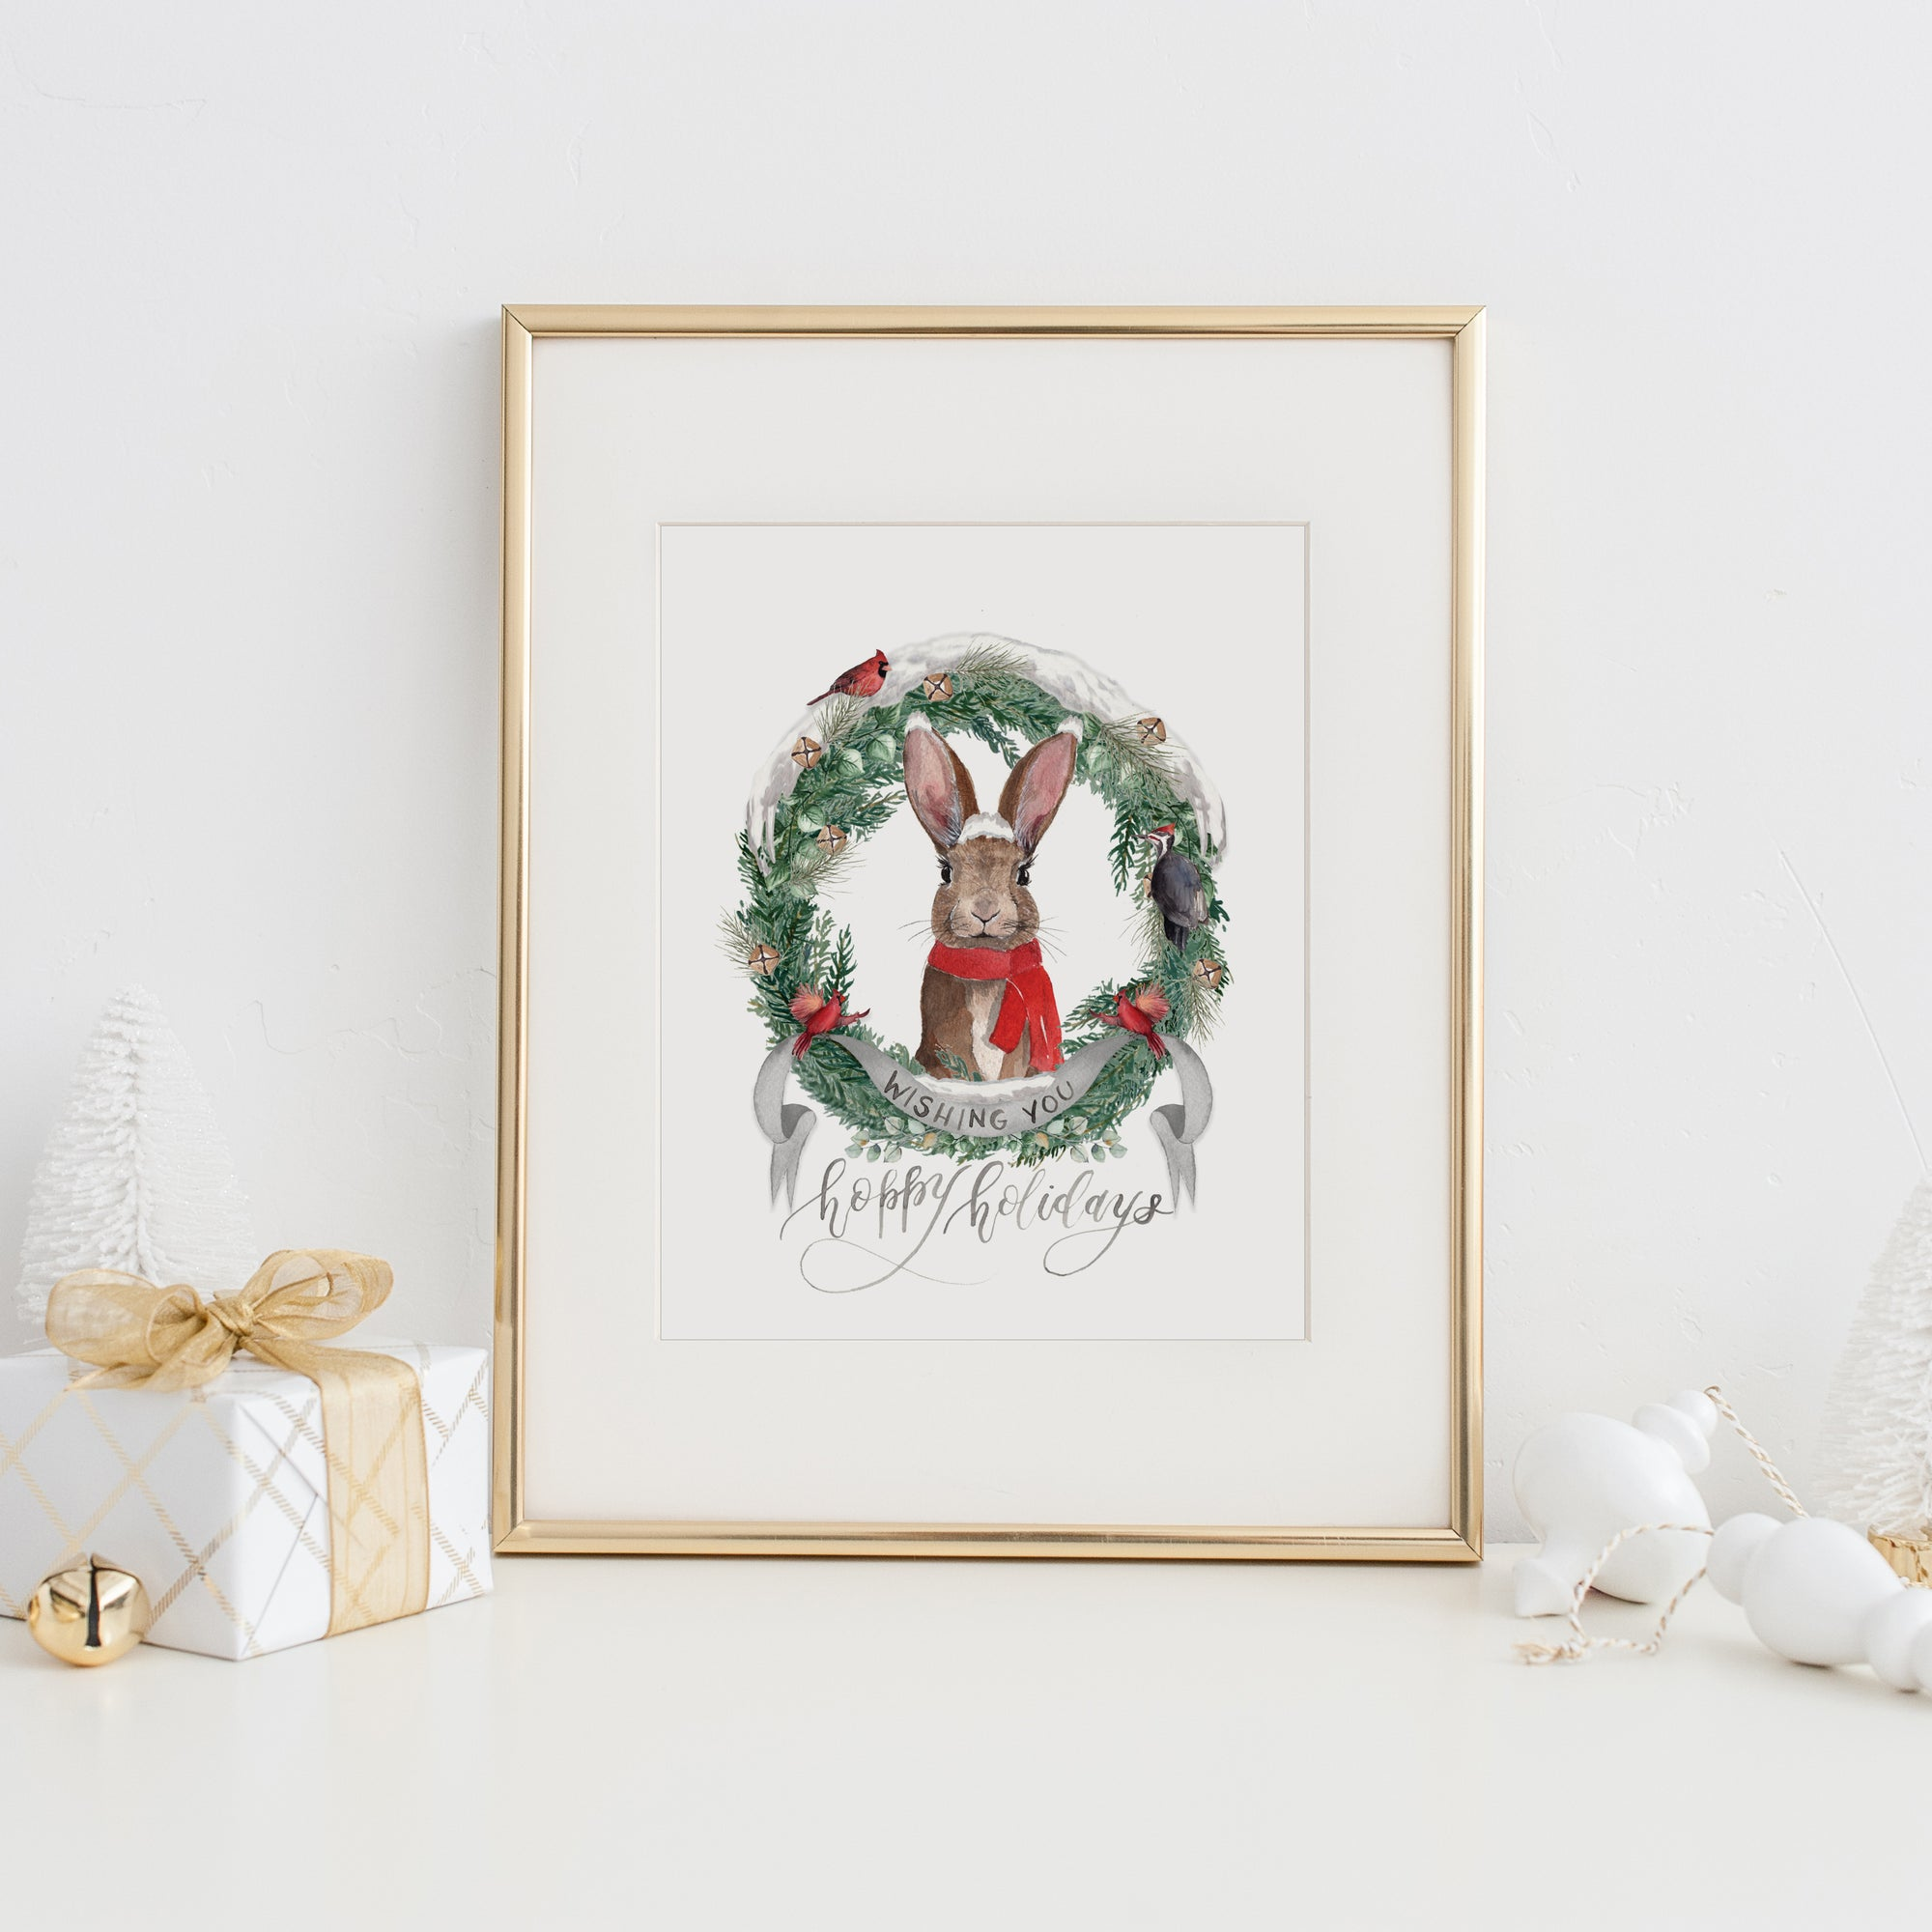 Wishing You Hoppy Holidays Art Print